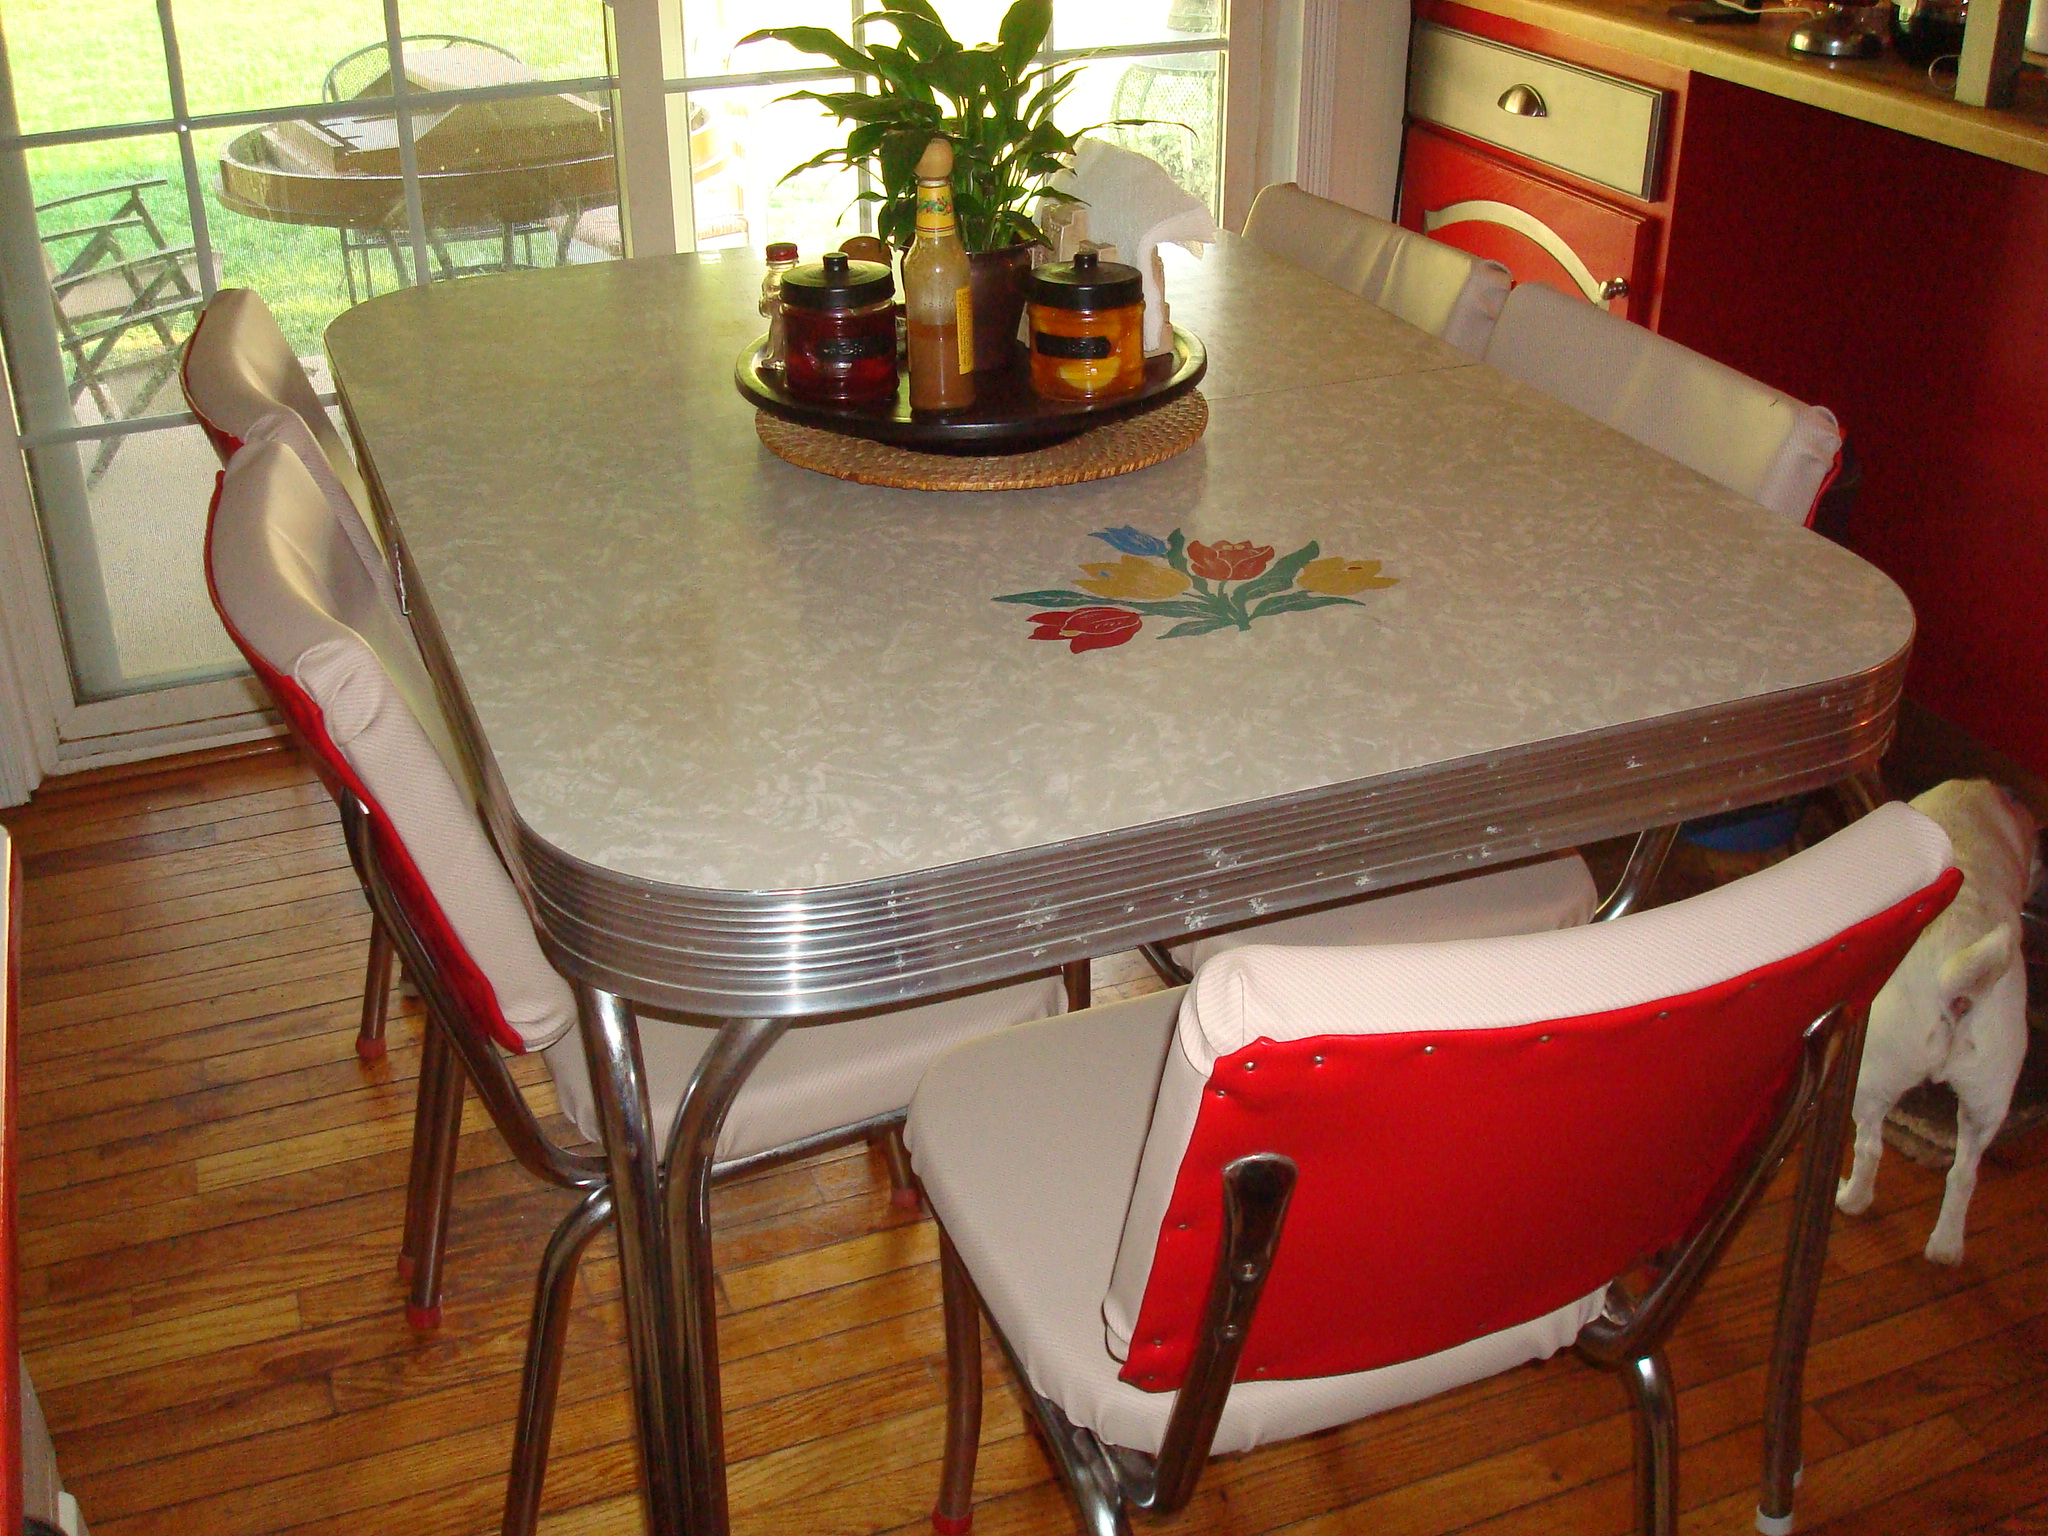 1950 s retro kitchen table chairs bringing back classic for Black kitchen table set